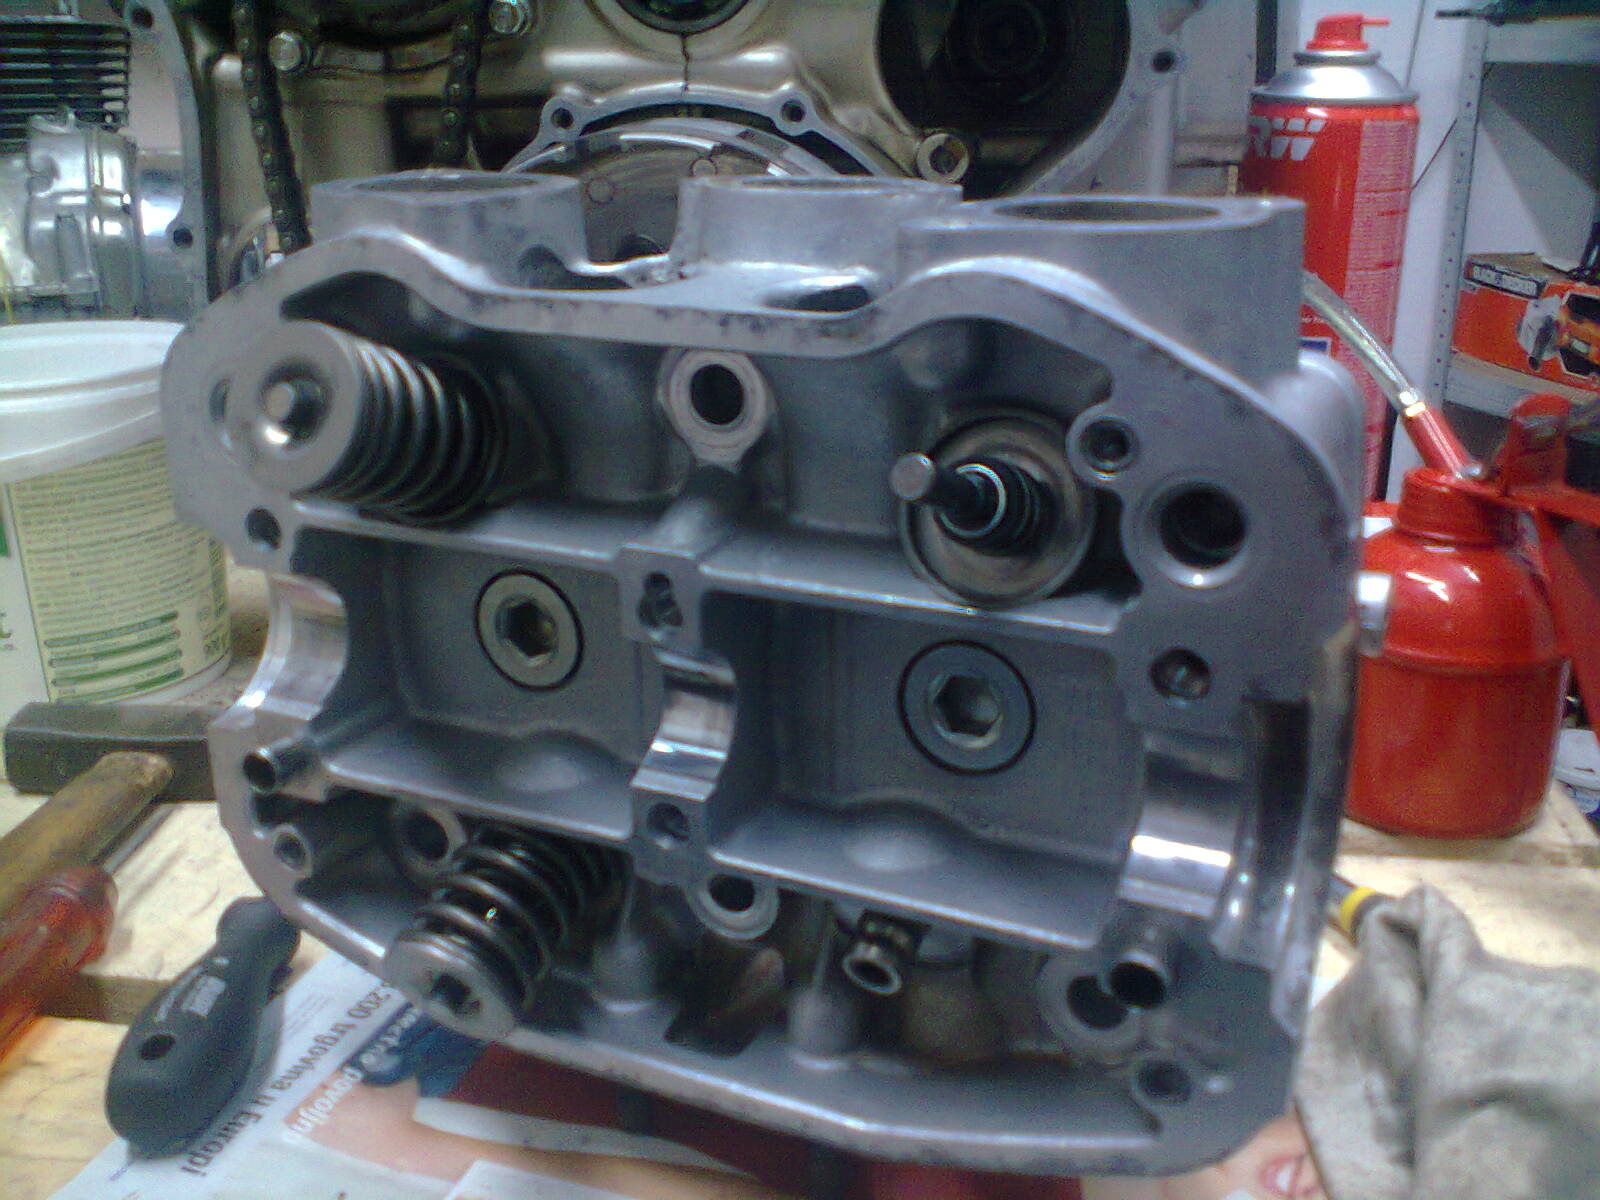 GL1100 engine heads assembly